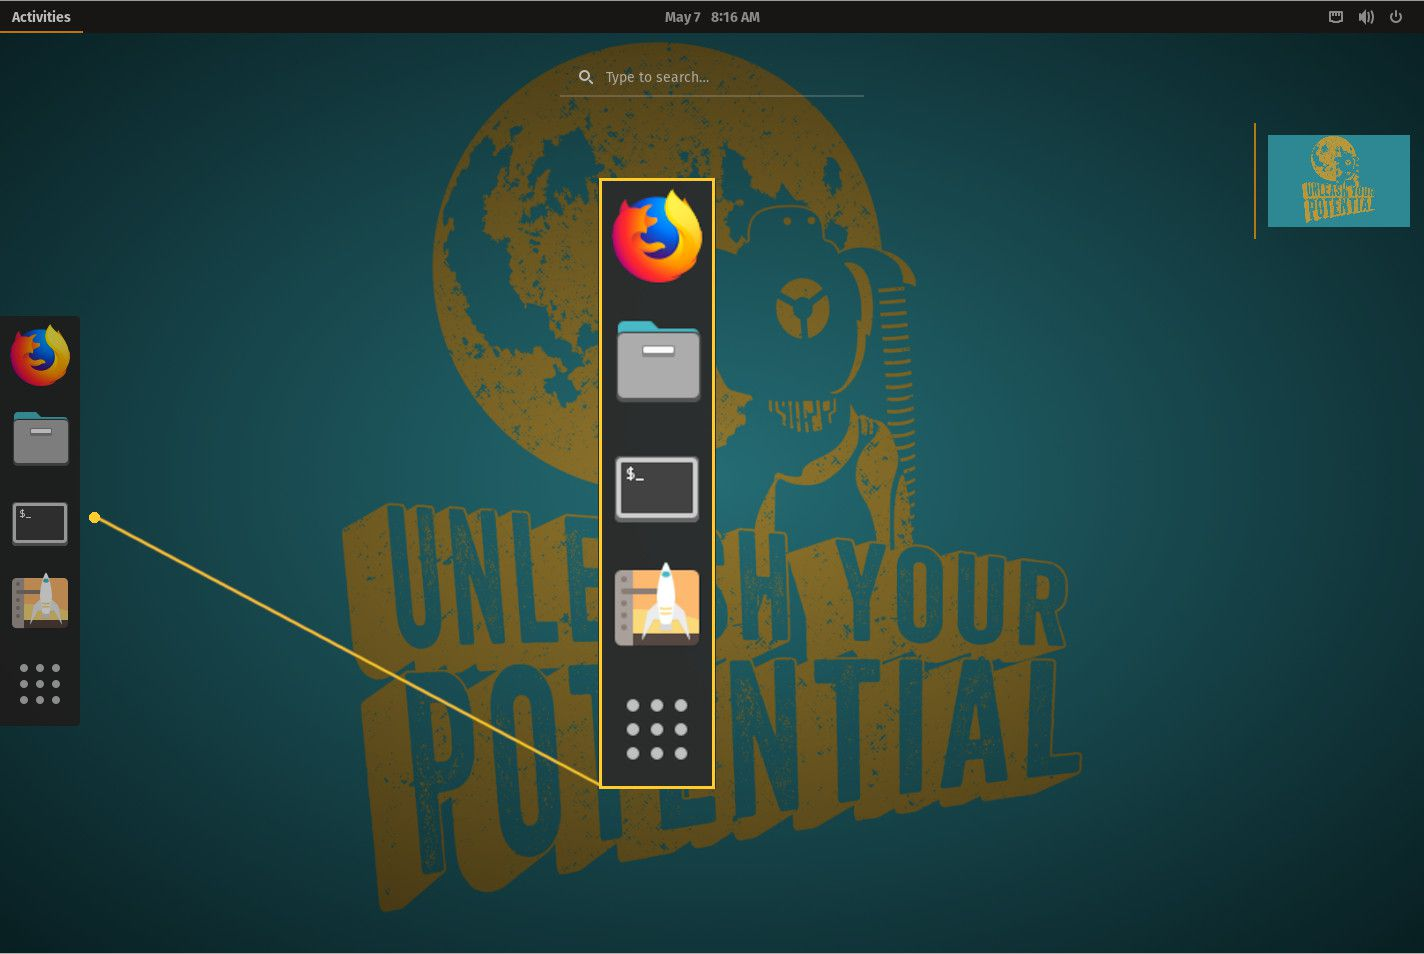 How to make launching apps easier in GNOME, KDE Plasma, and